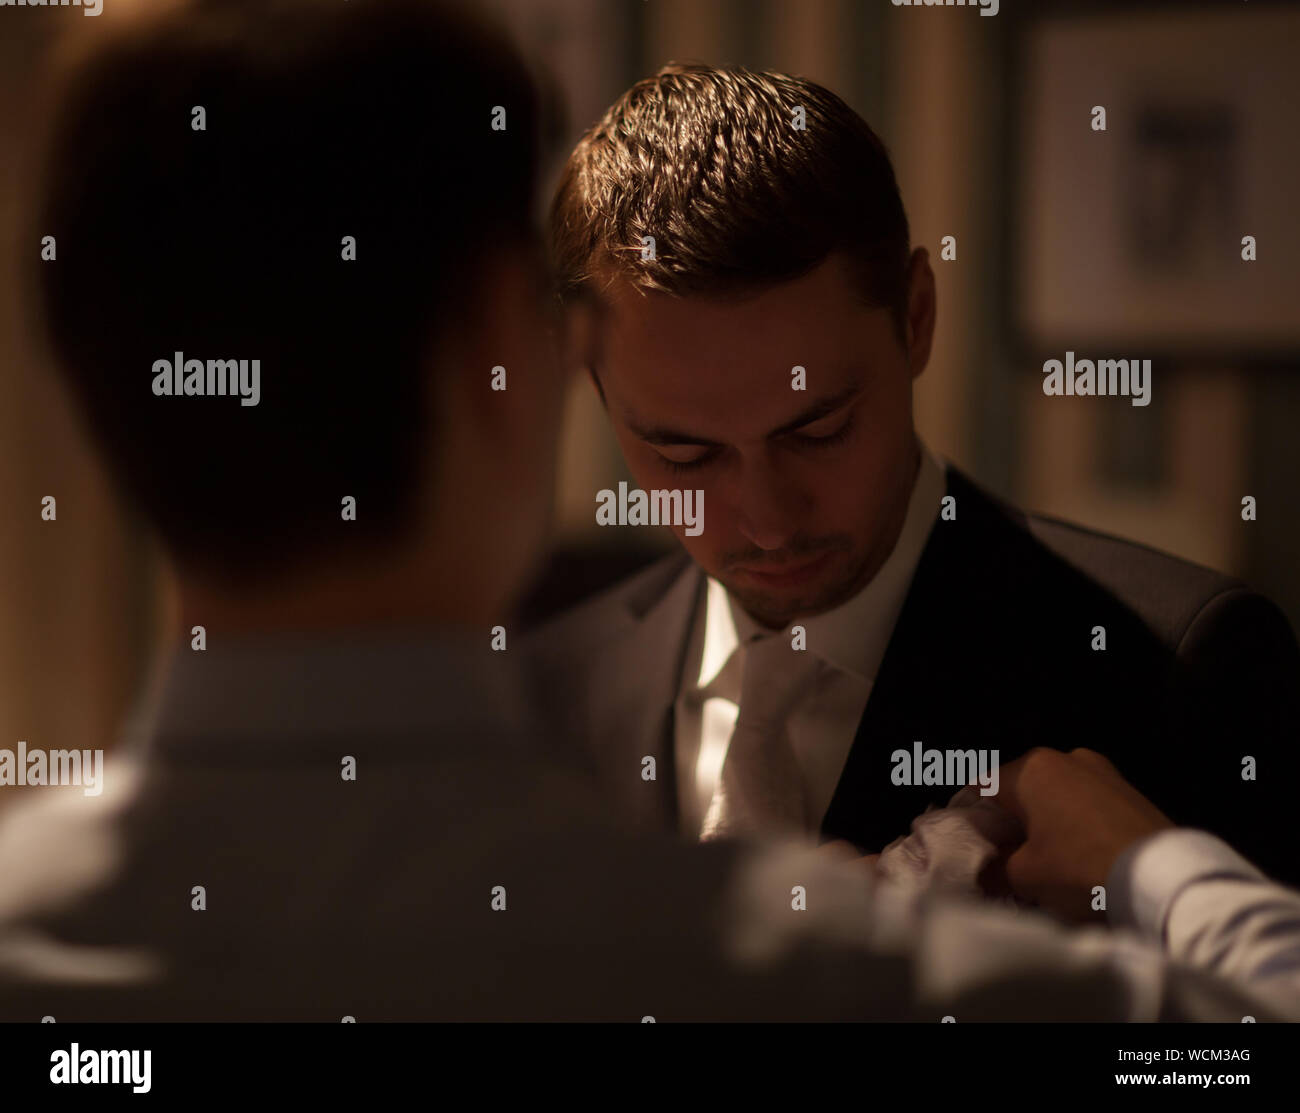 Rear View Of Groomsman Adjusting Napkin For Bridegroom Stock Photo